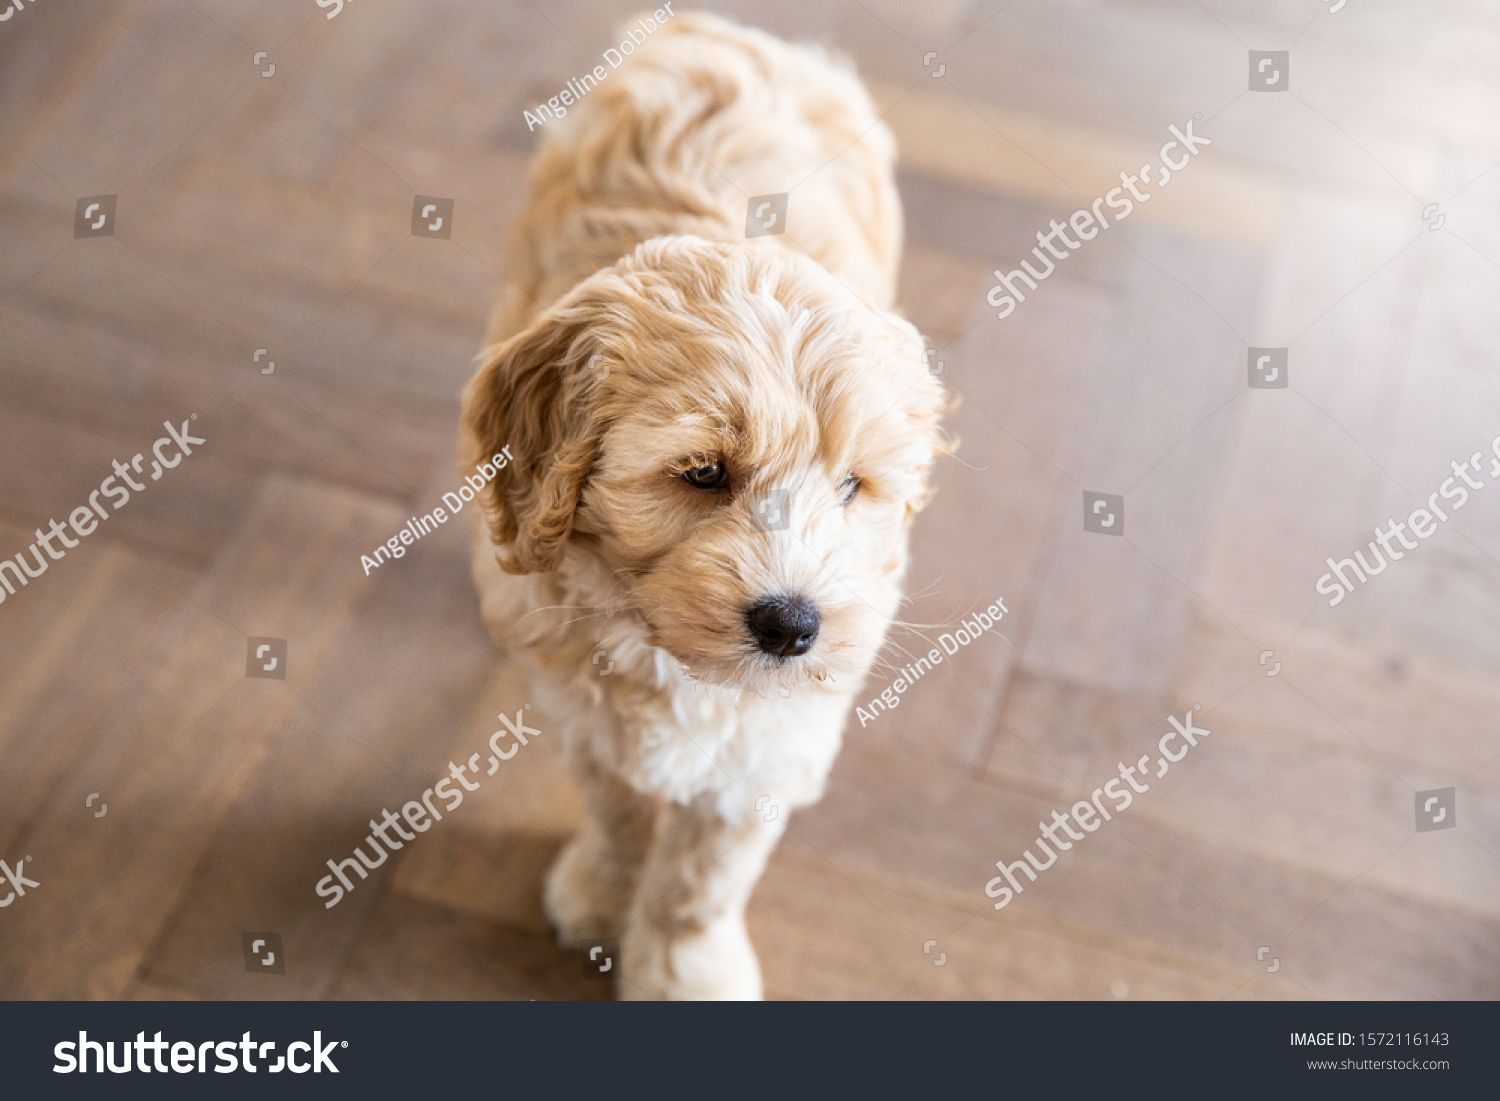 Cream Australian Labradoodle pup standing inside on a wooden floor looking at the side #Ad , #spon, #Labradoodle#pup#Cream#Australian